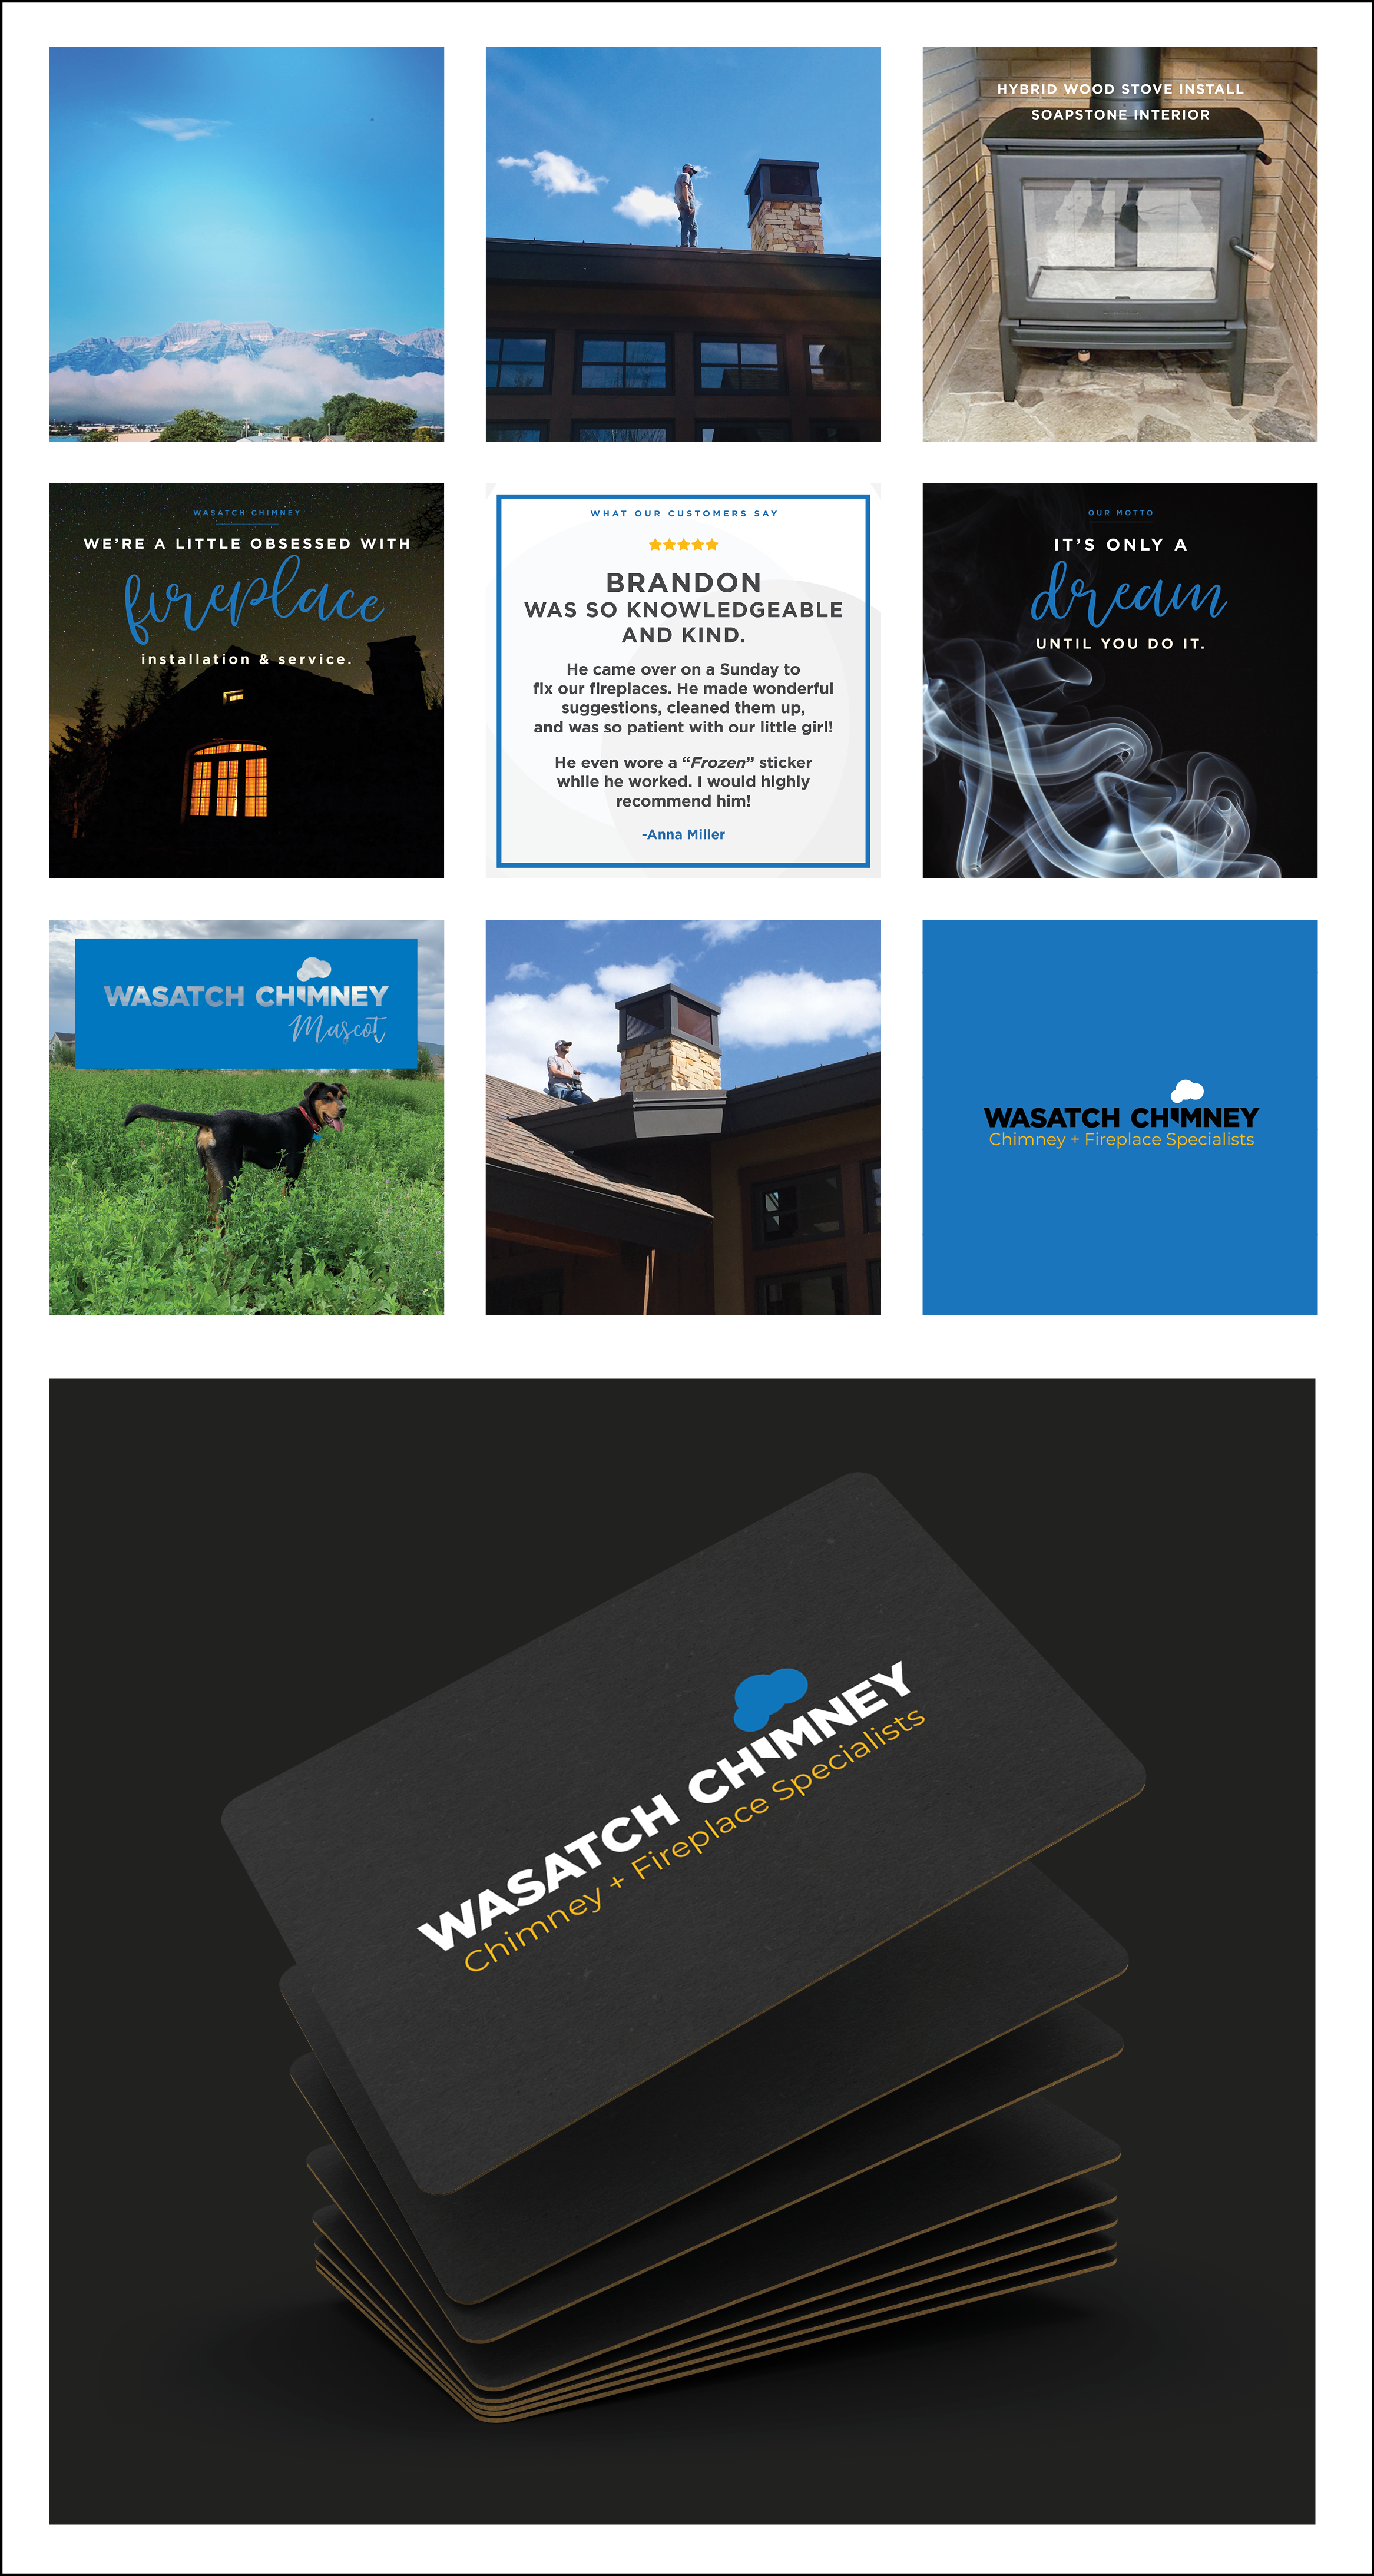 Workhorse Social _Wasatch Chimney_560x1560.png